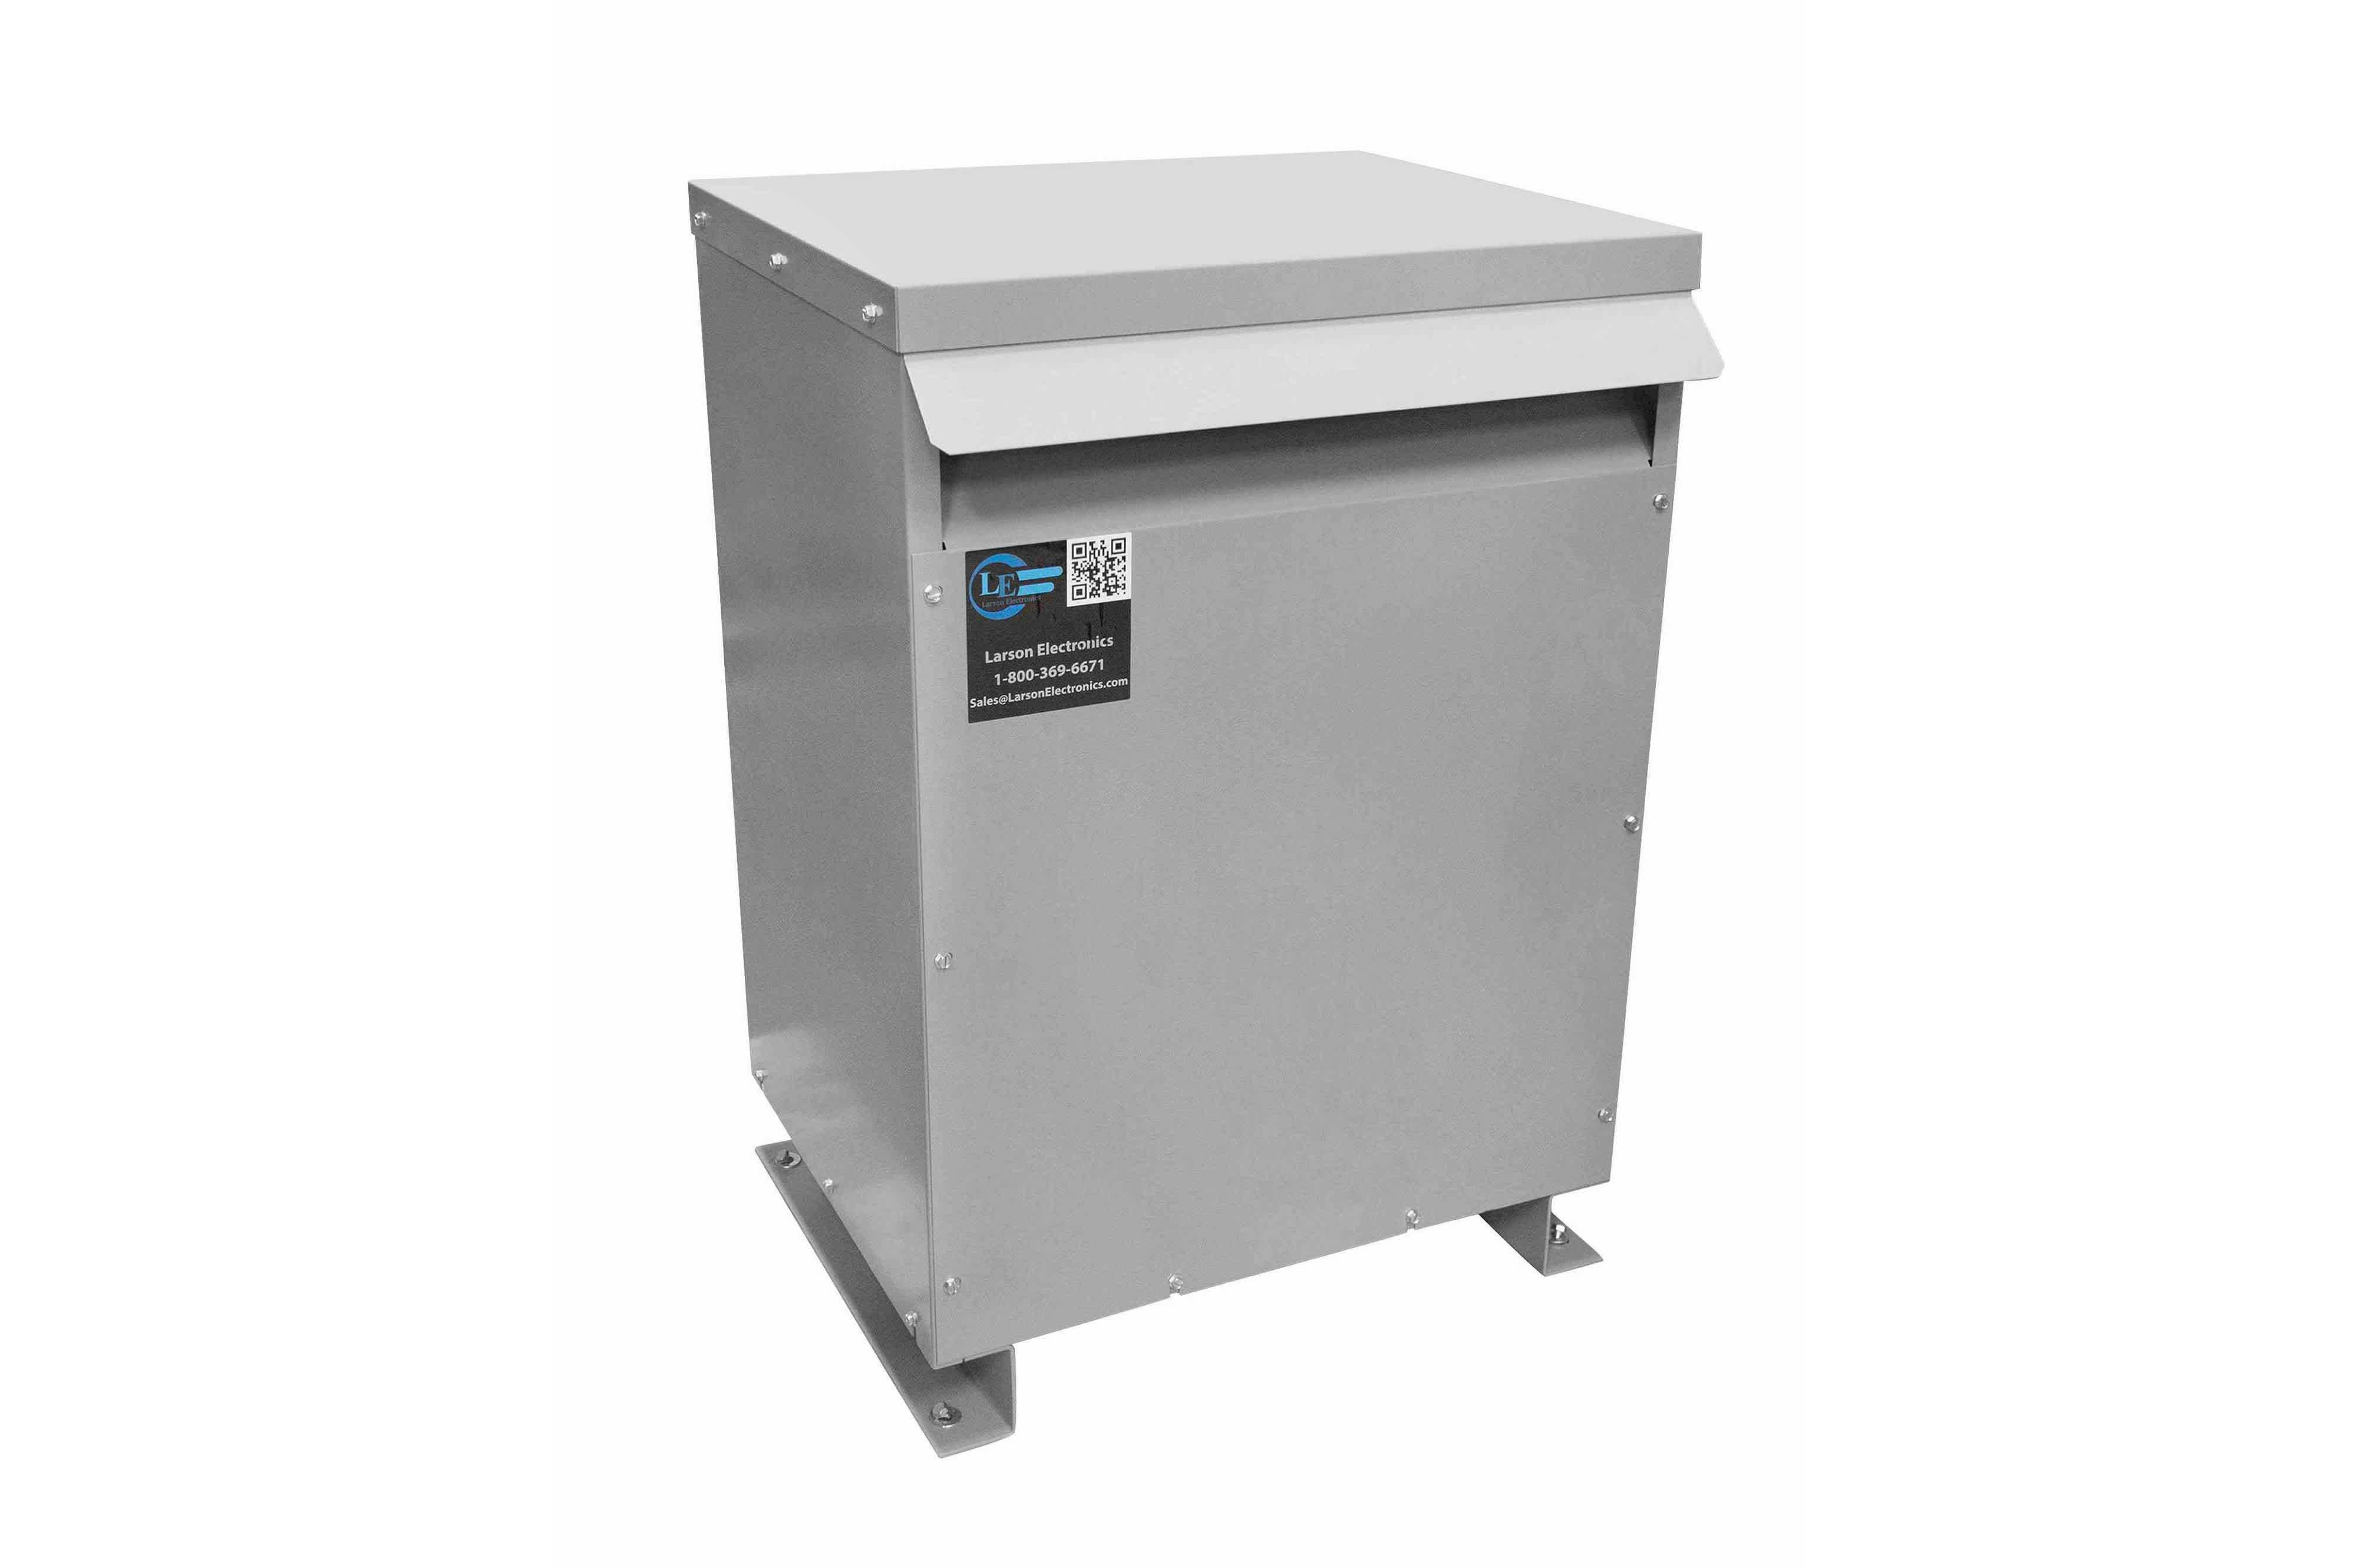 14 kVA 3PH Isolation Transformer, 240V Wye Primary, 600V Delta Secondary, N3R, Ventilated, 60 Hz